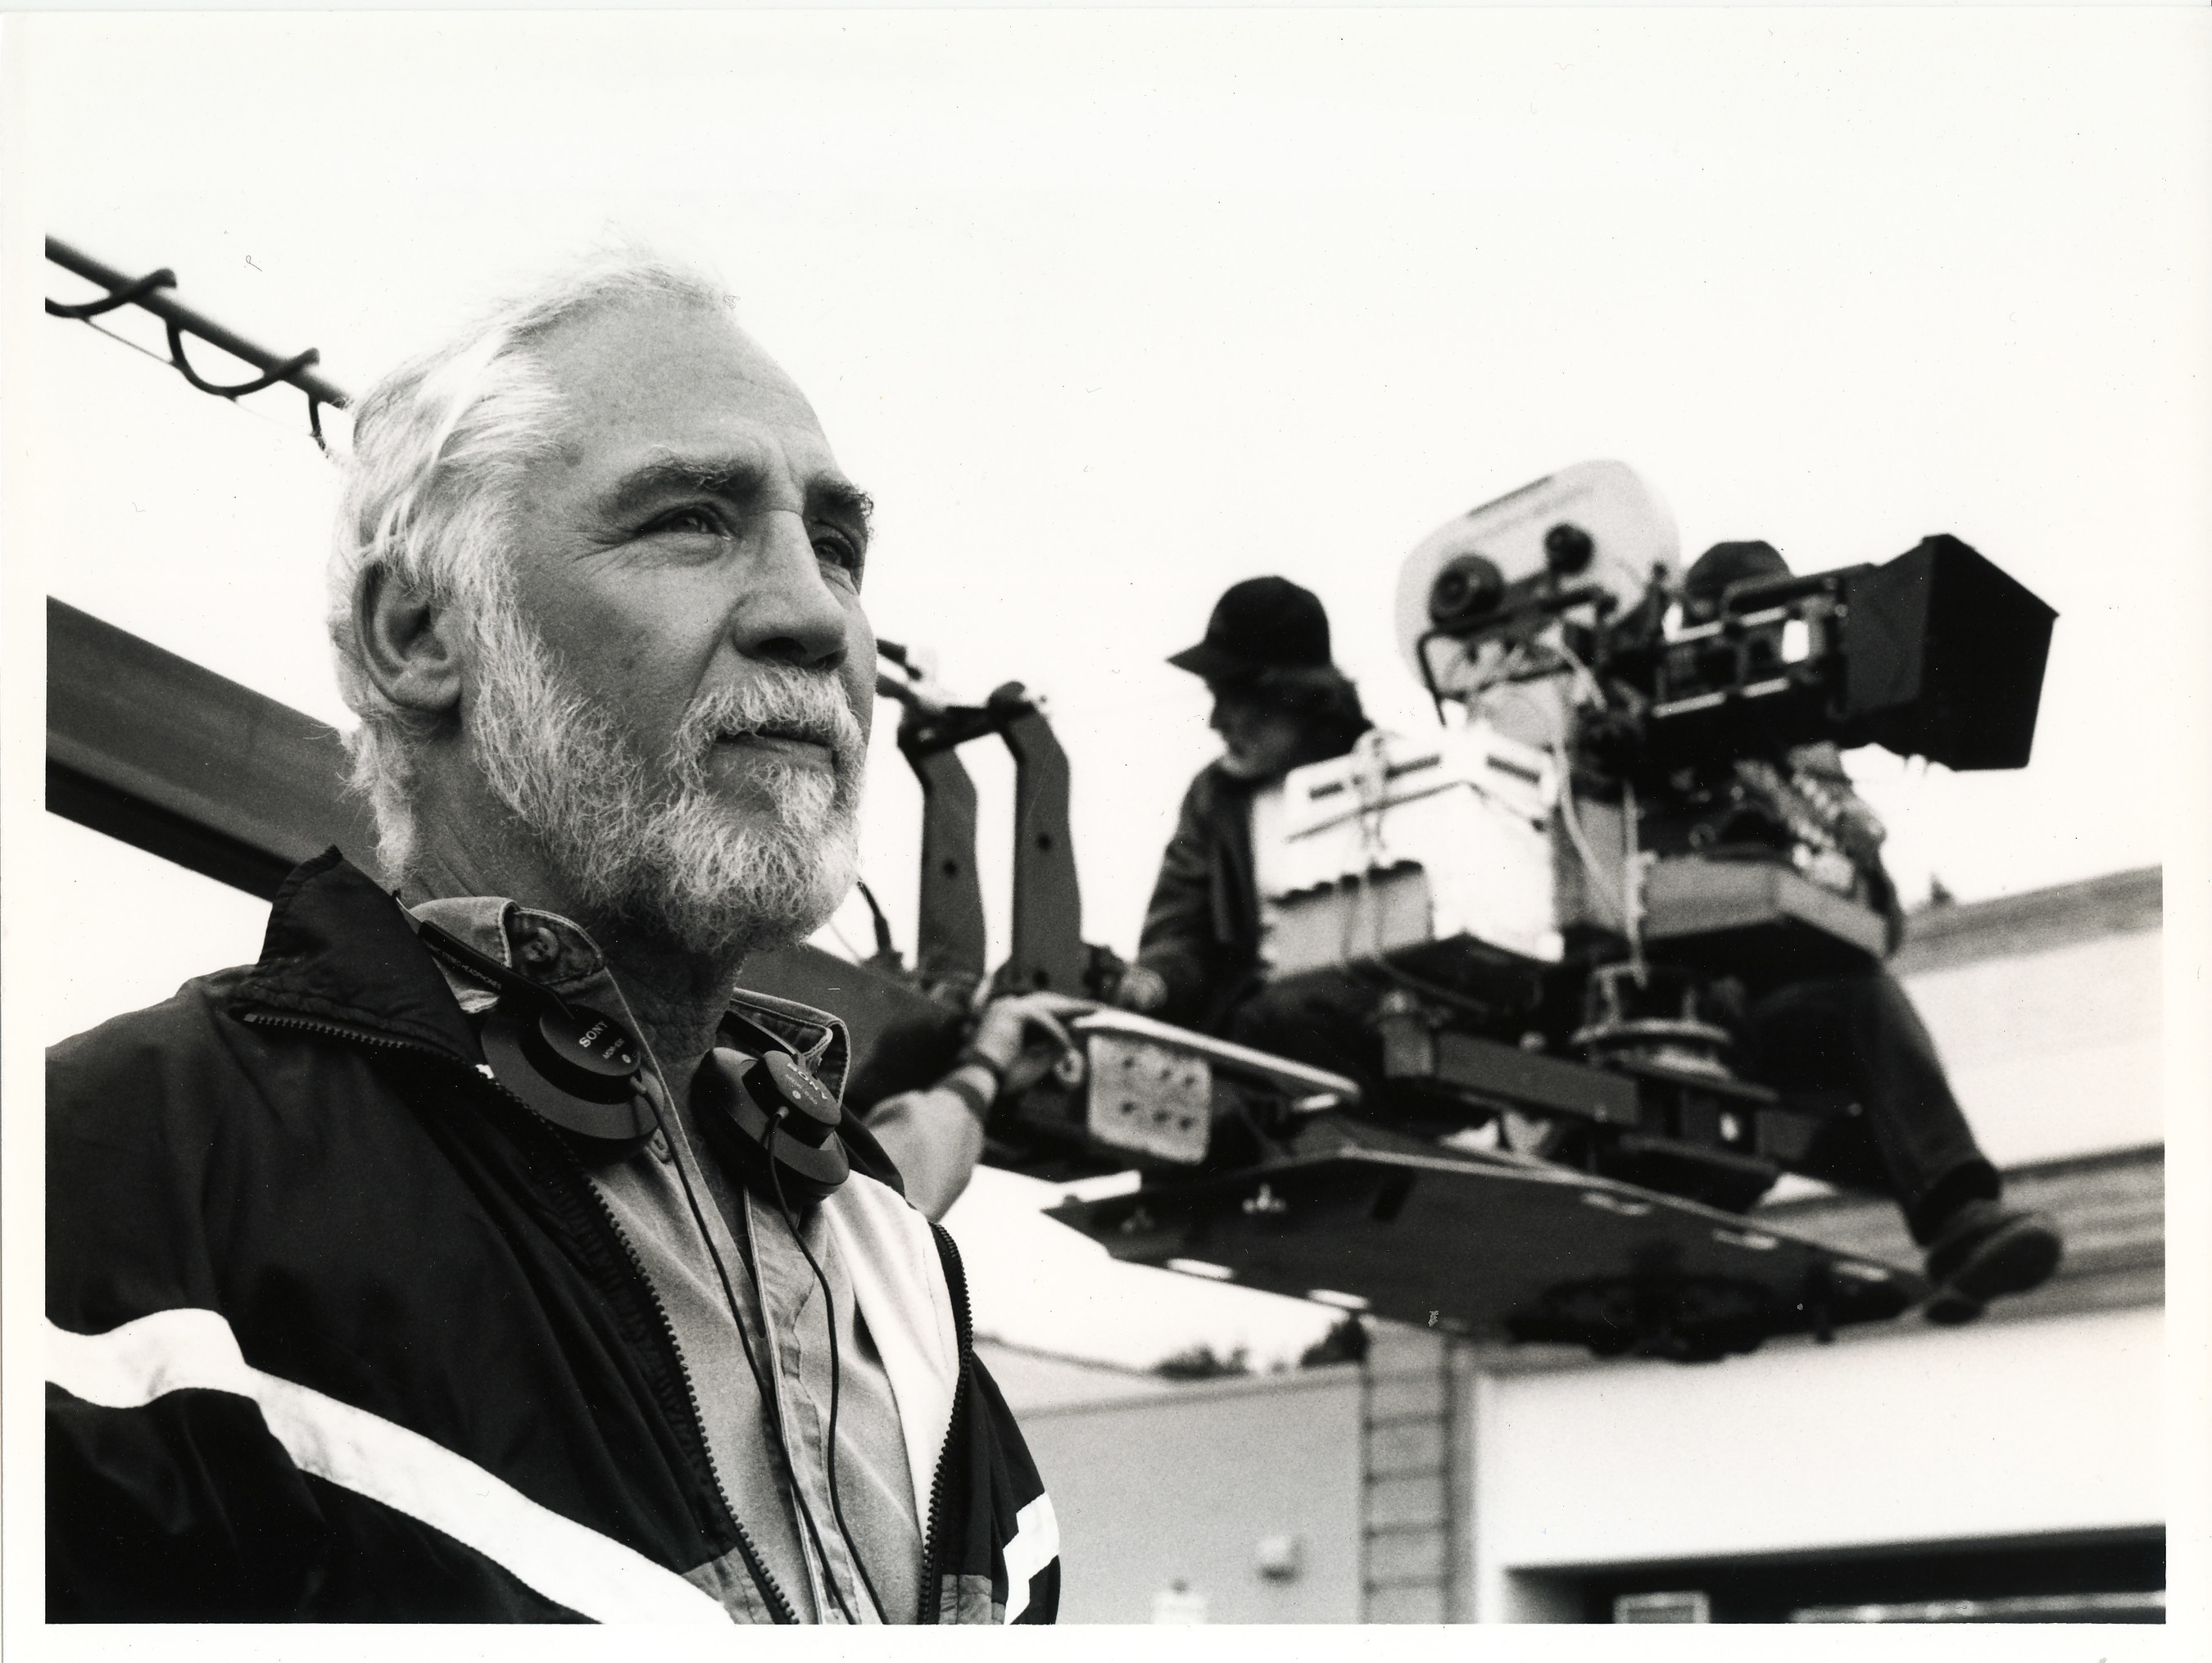 Legendary Filmmaker Robert M. Young (91) Suffers a Stroke, Receives IPA's Auteur Award, and he's NOT DONE YET!